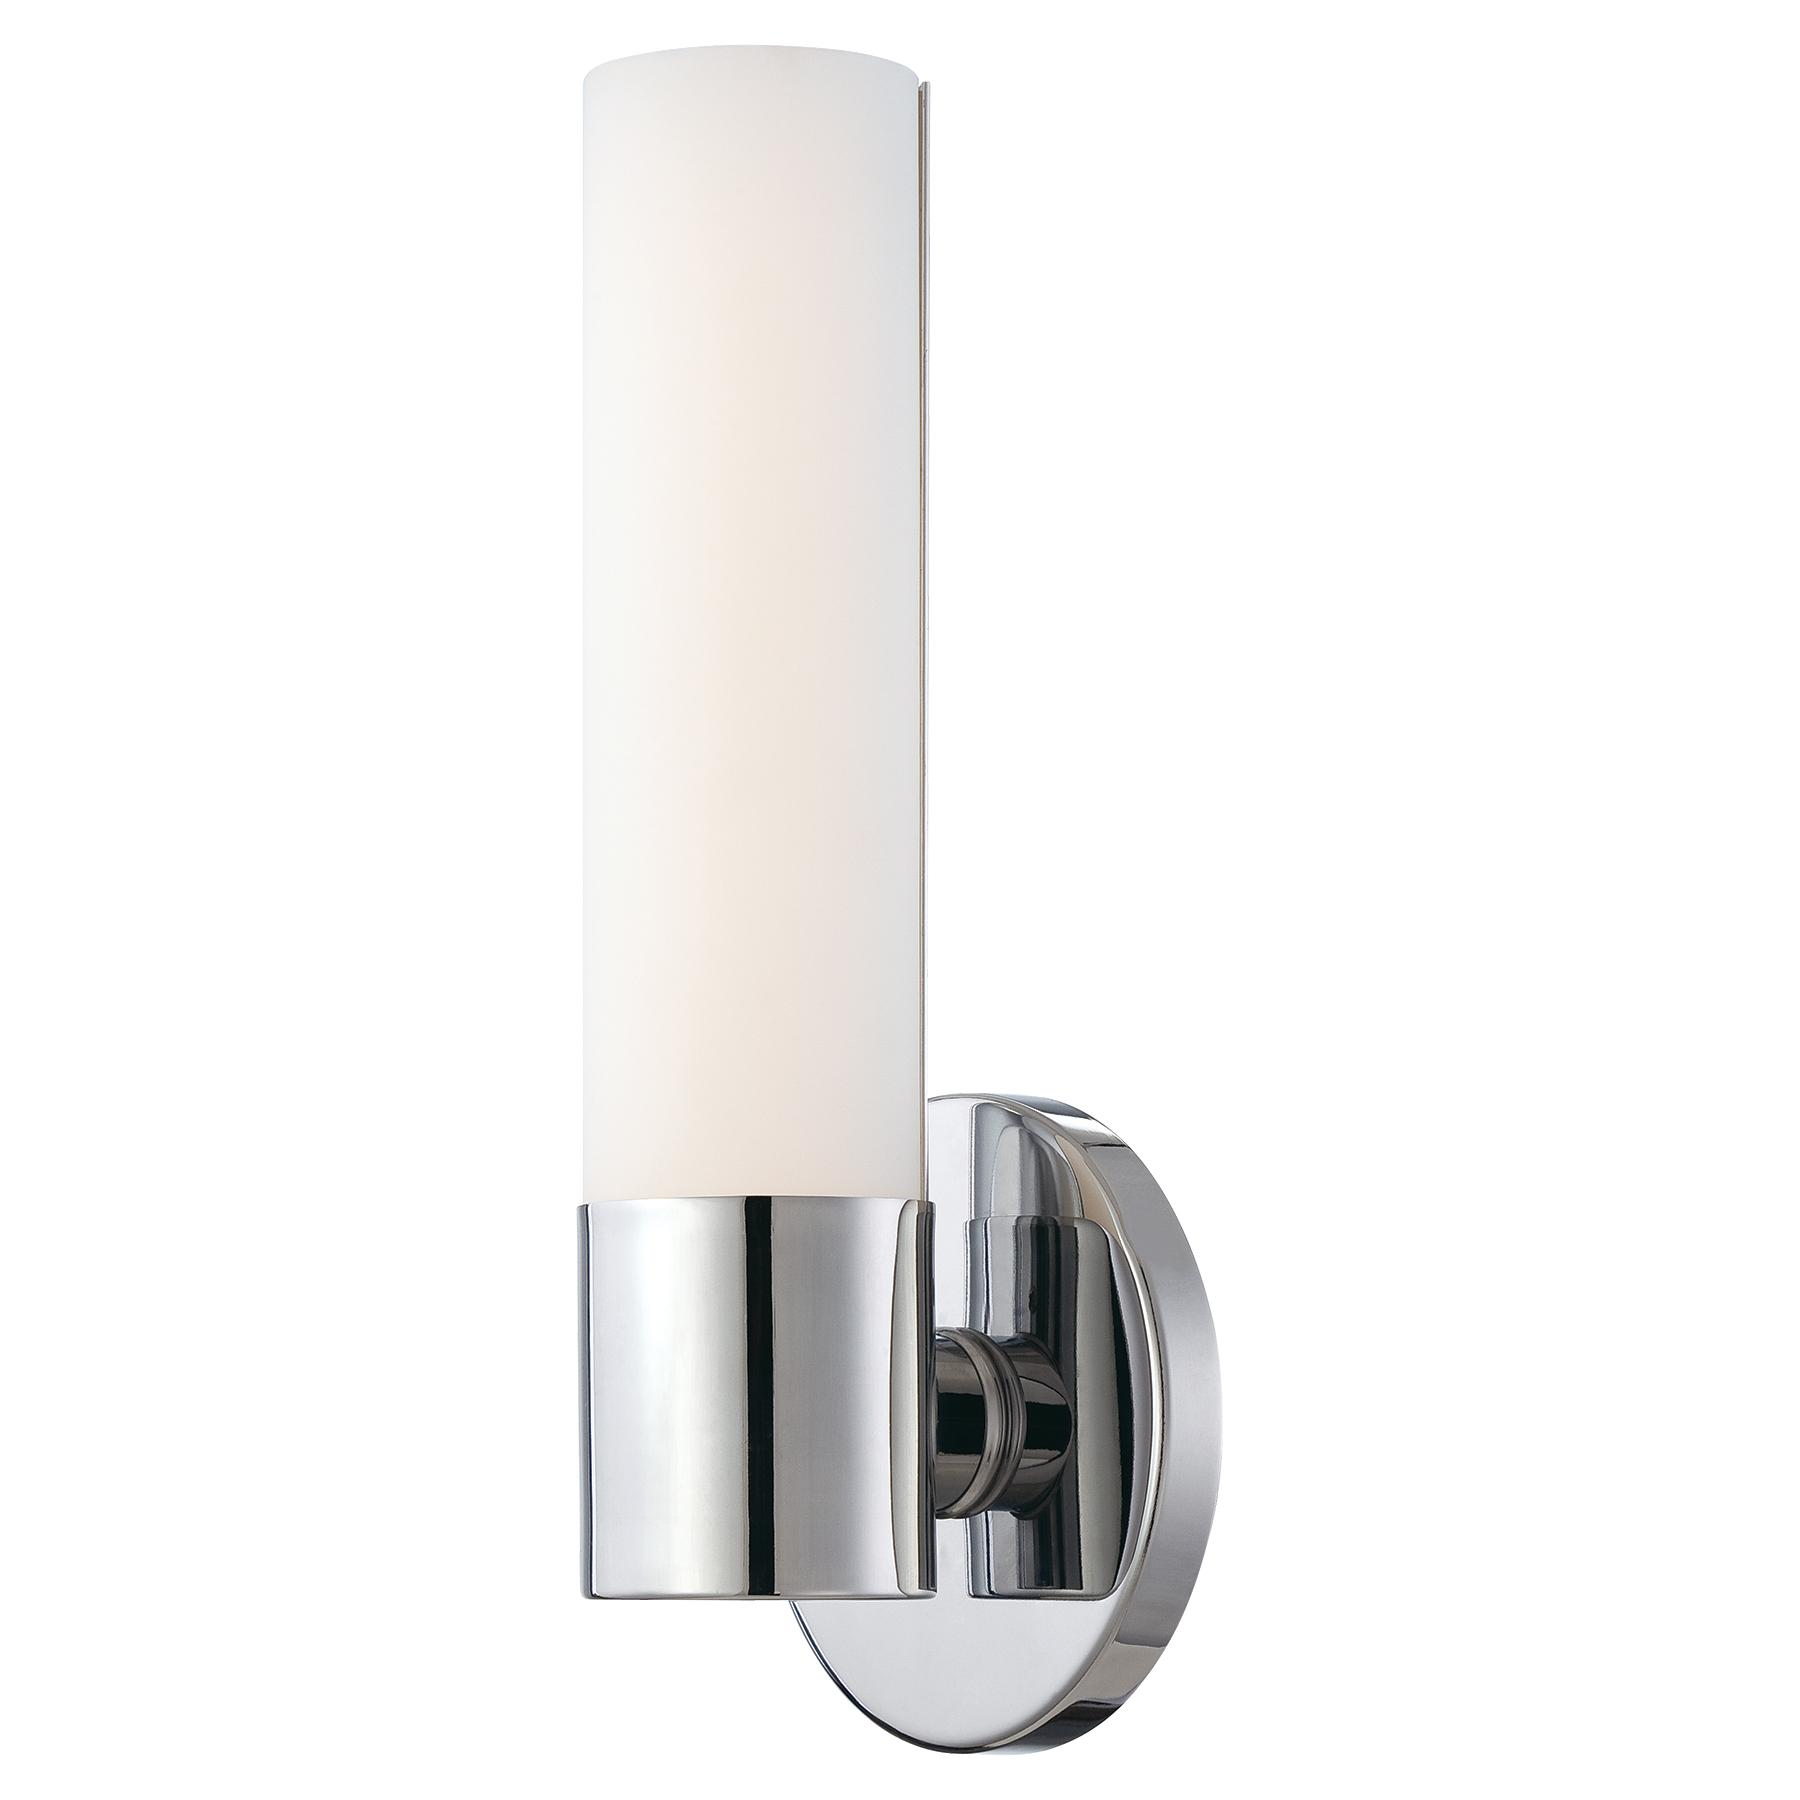 saber compact florescent wall sconce by george kovacs. Black Bedroom Furniture Sets. Home Design Ideas